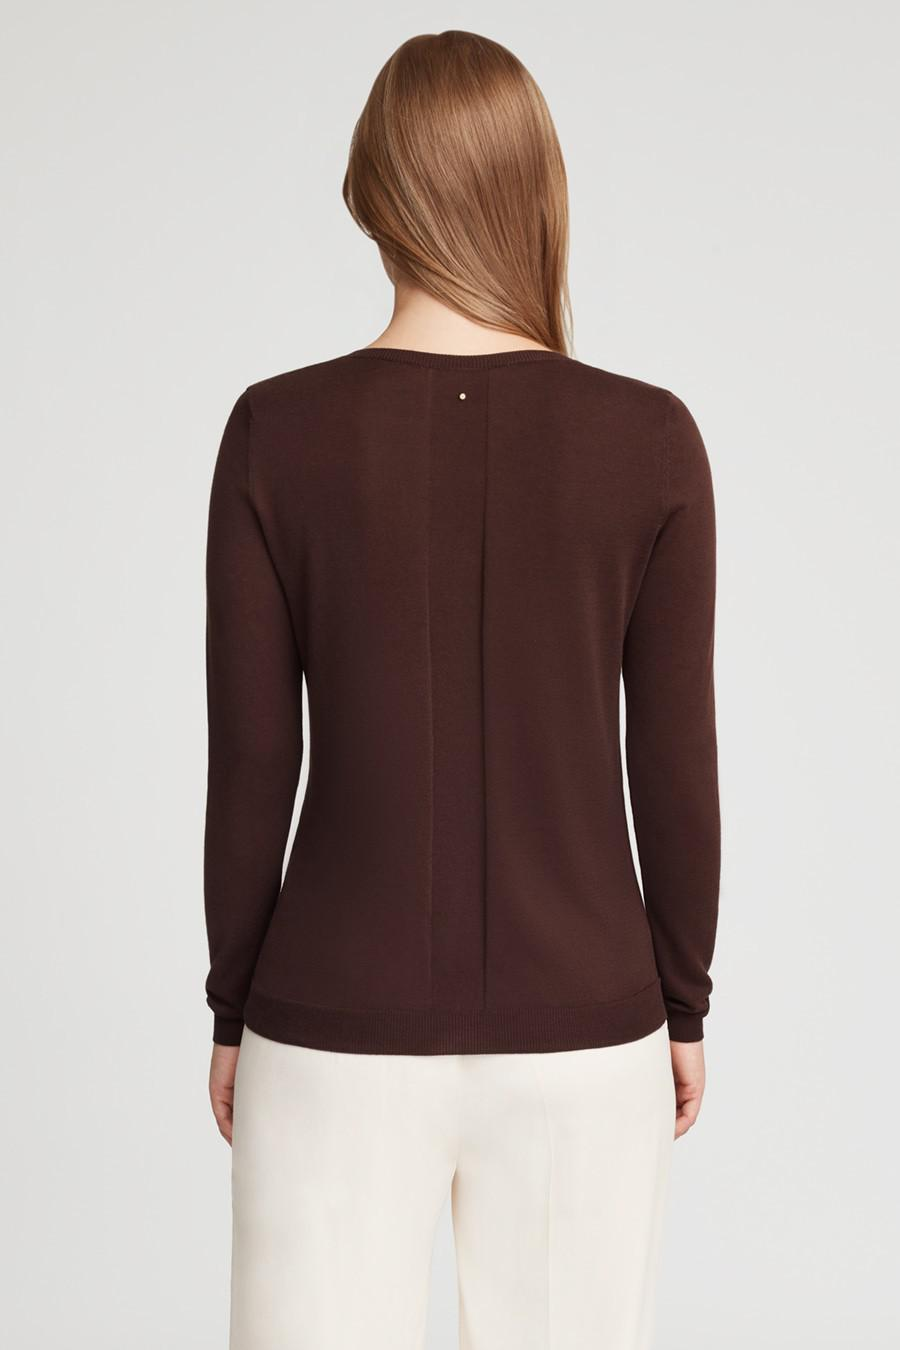 Women's Classic Cotton Cashmere V-Neck Sweater in Chocolate | Size: 2